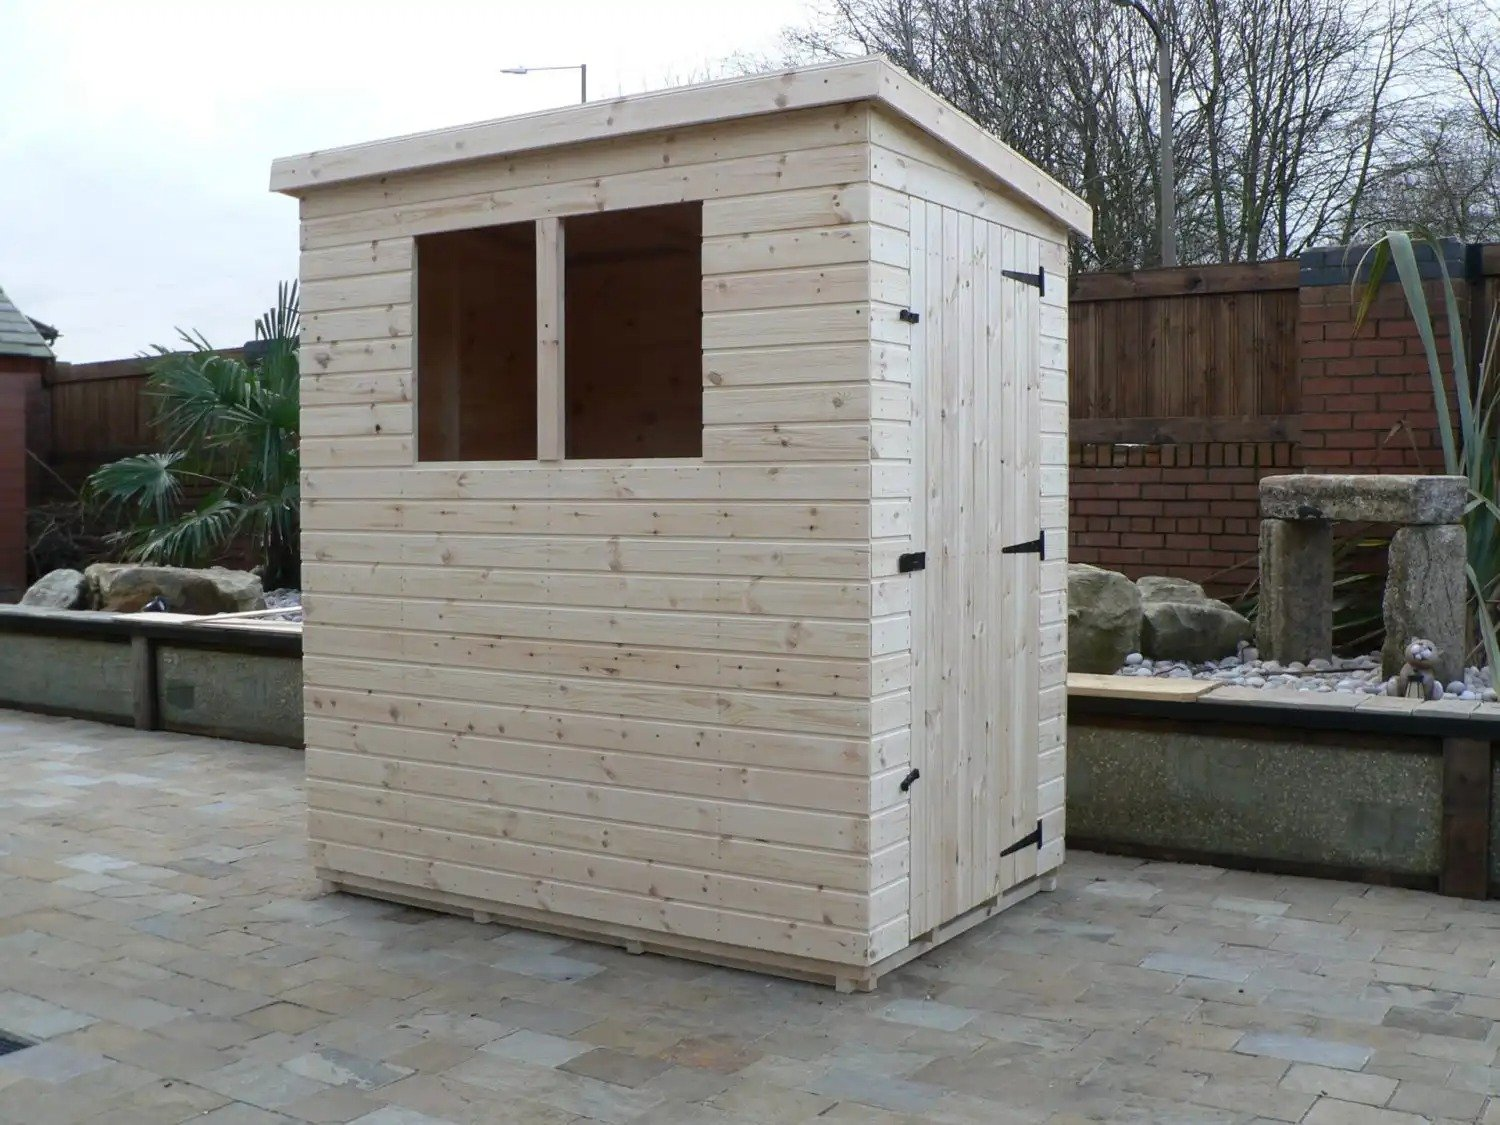 6' X 4' Pent Shed Full Size Windows